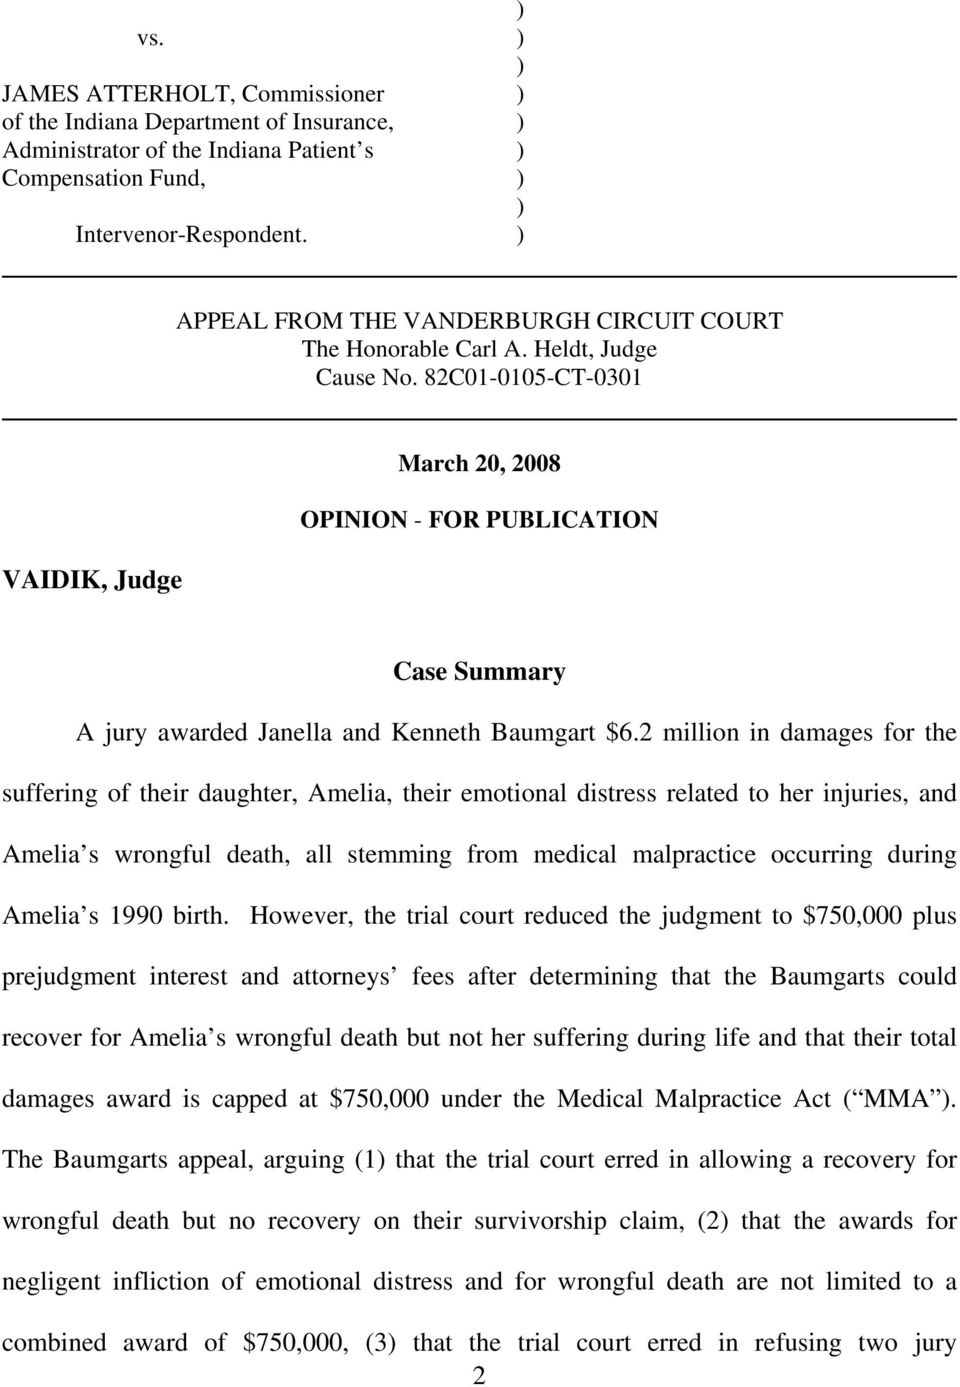 82C01-0105-CT-0301 VAIDIK, Judge March 20, 2008 OPINION - FOR PUBLICATION Case Summary A jury awarded Janella and Kenneth Baumgart $6.